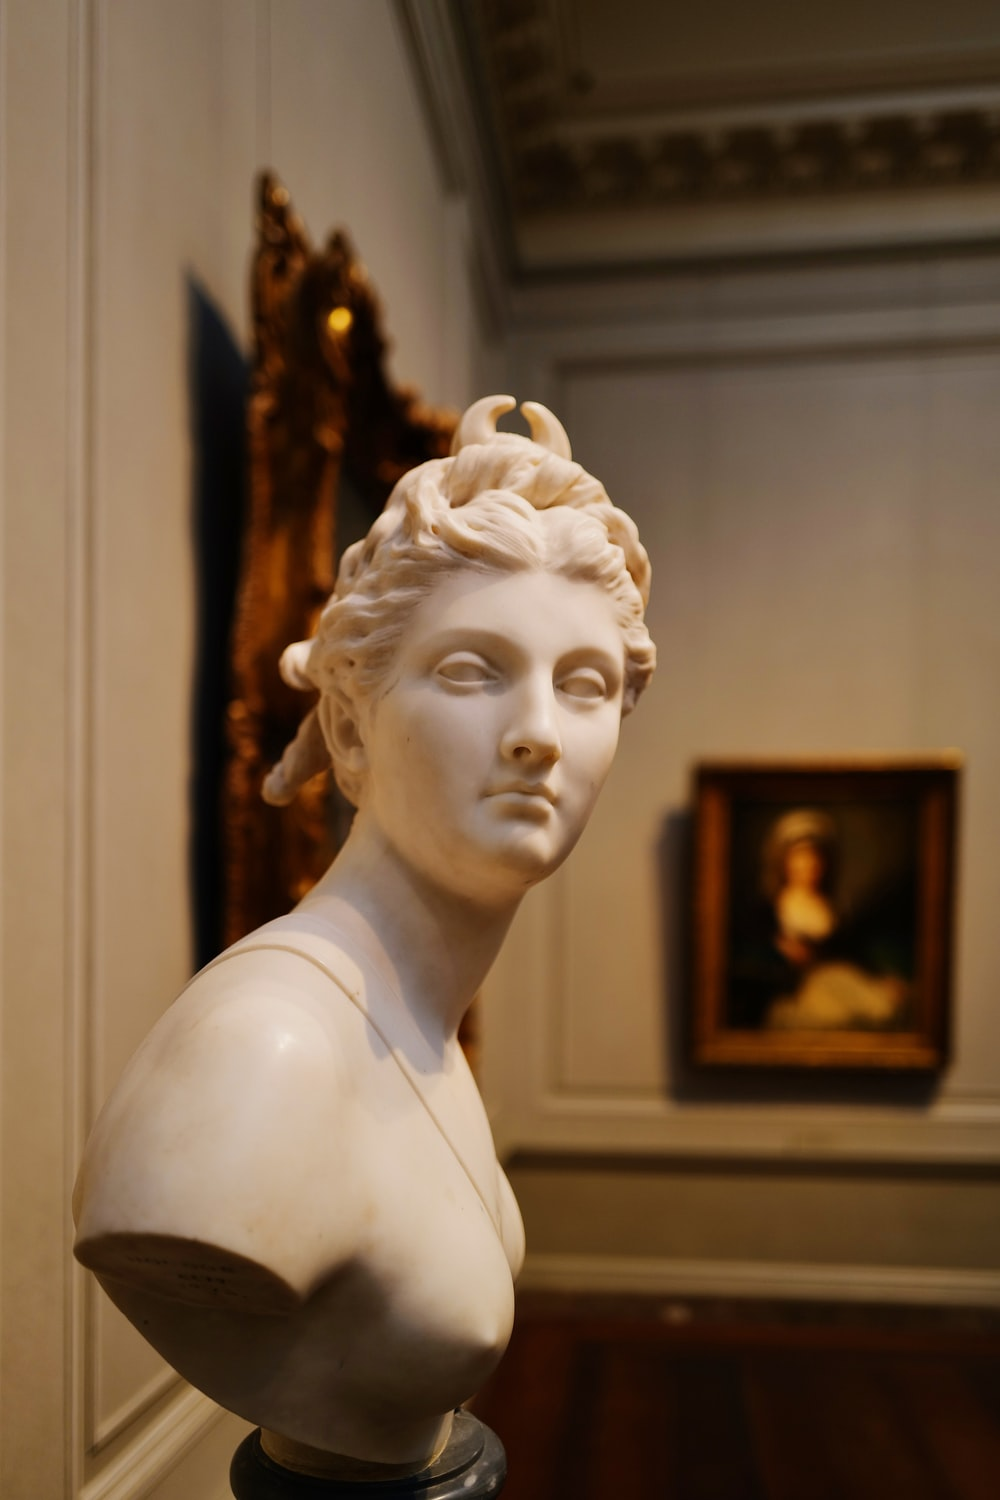 woman bust statue